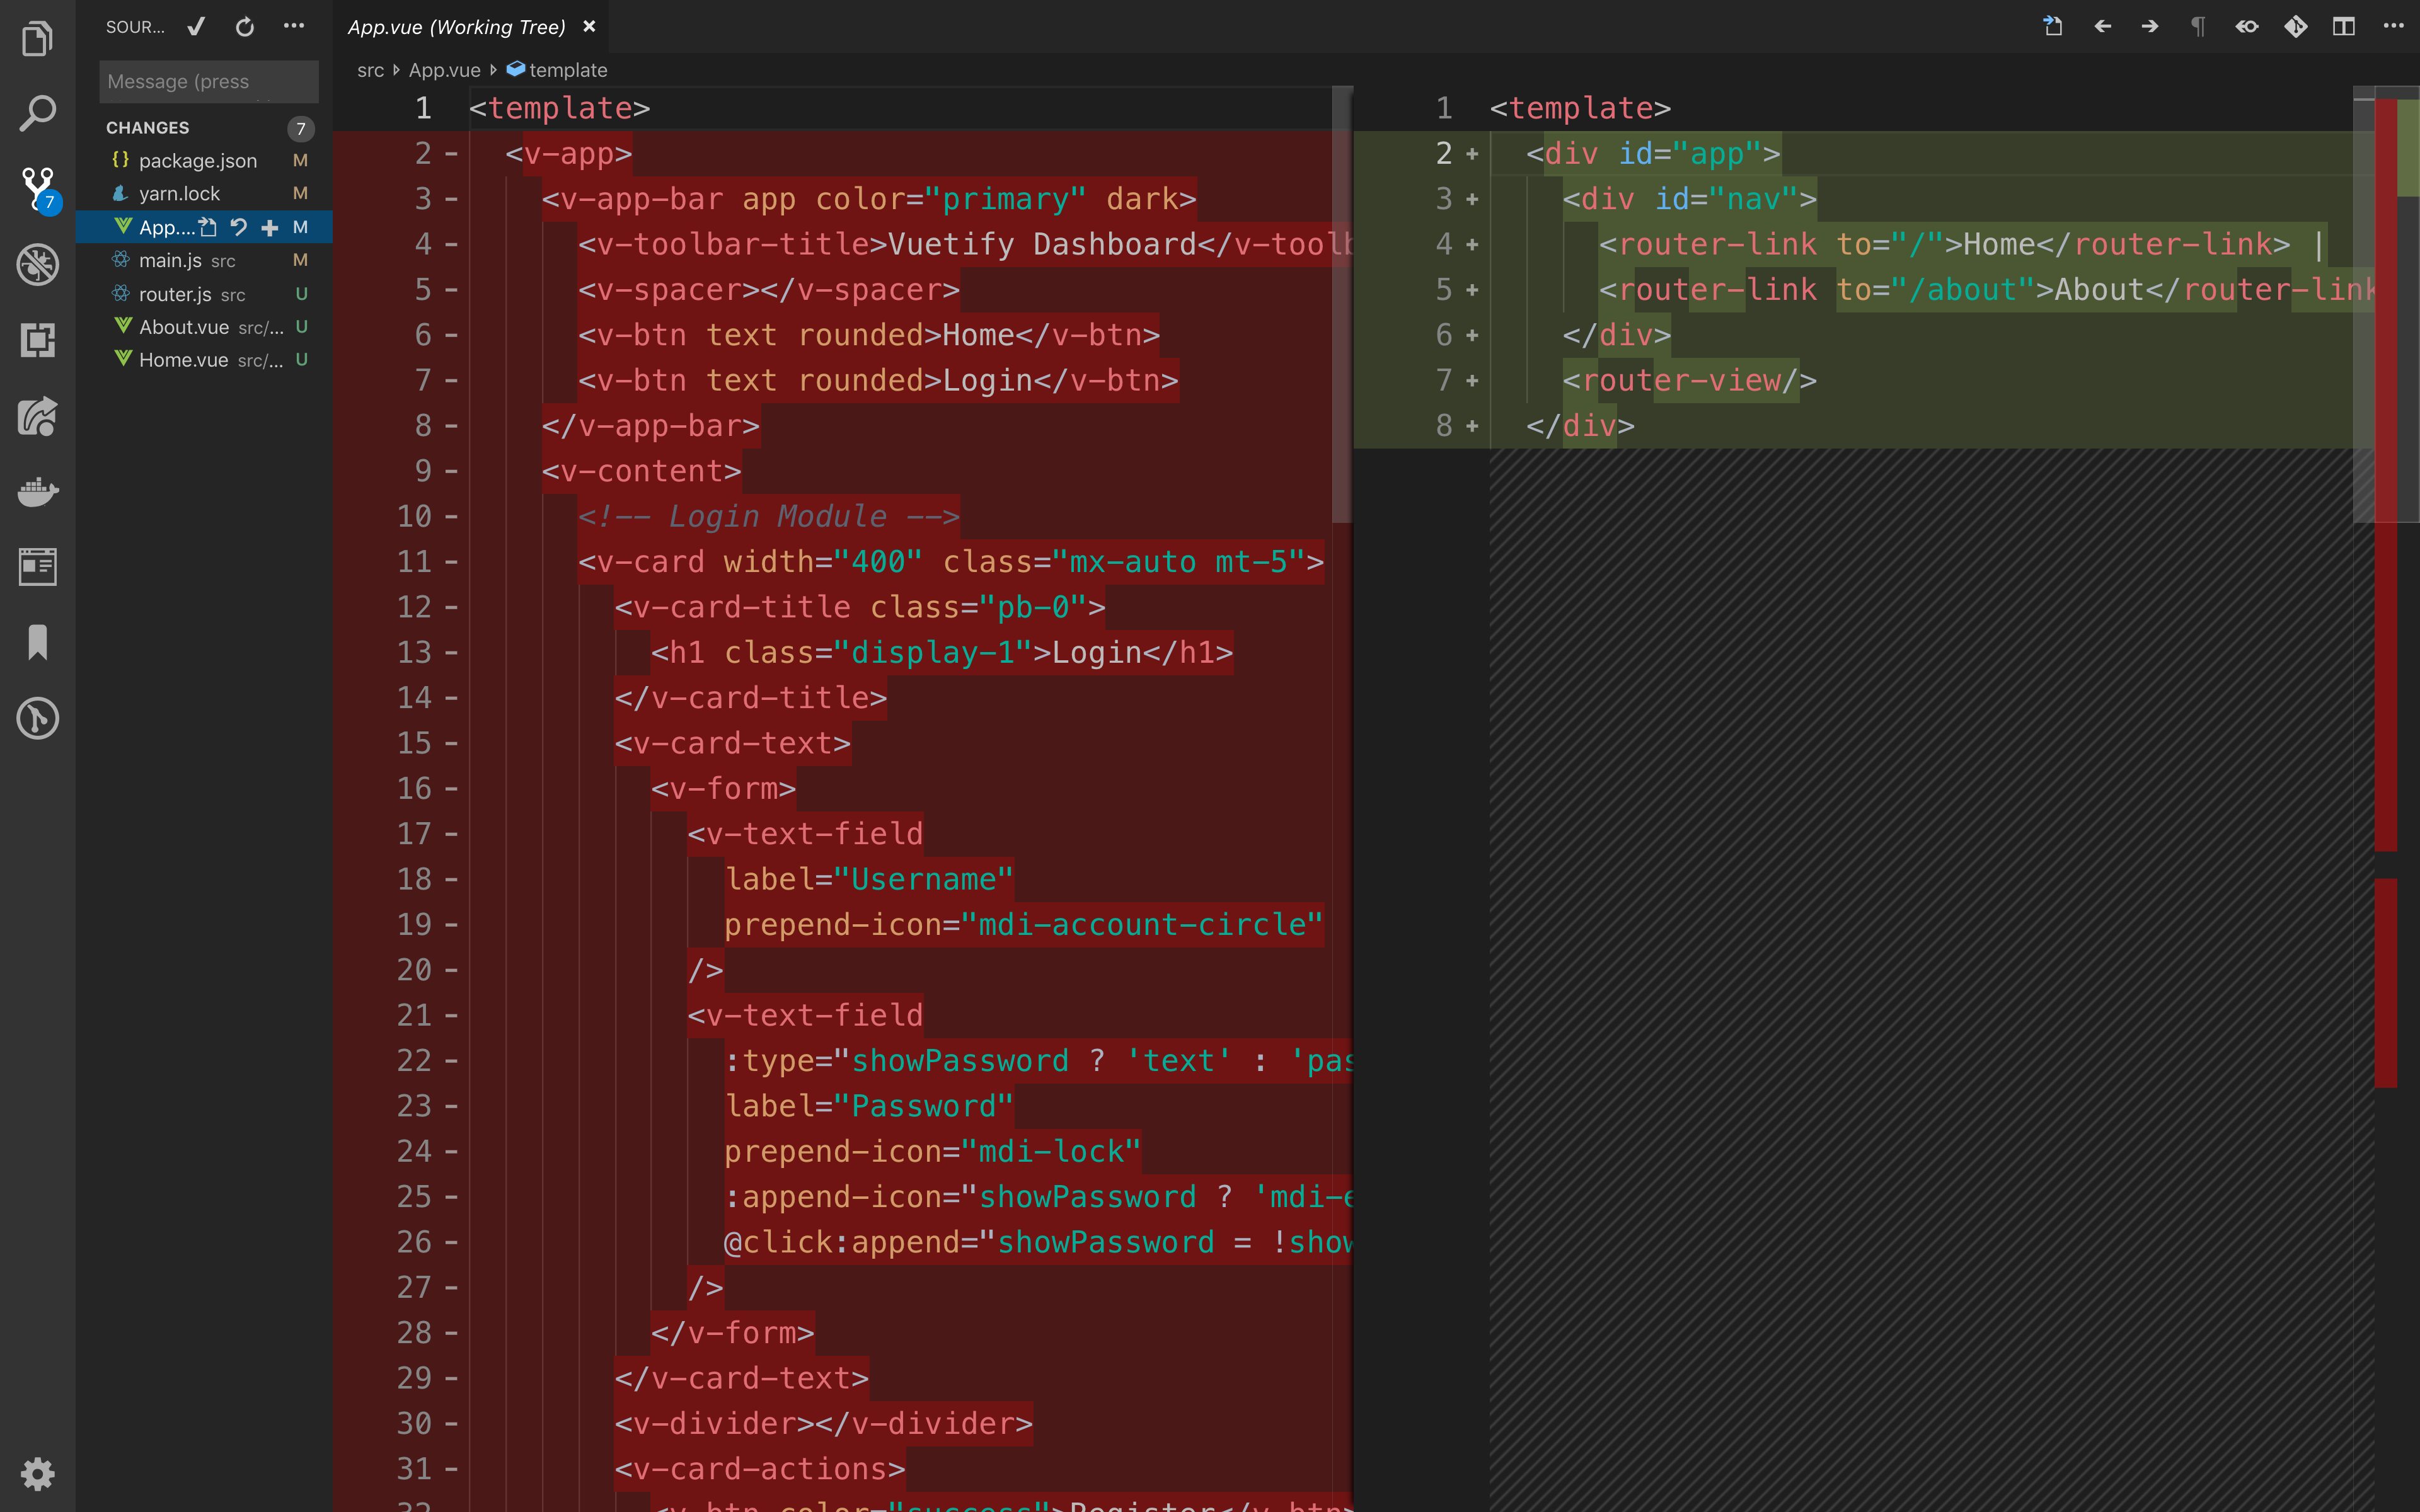 Screenshot of the diff of App.vue on VS Code